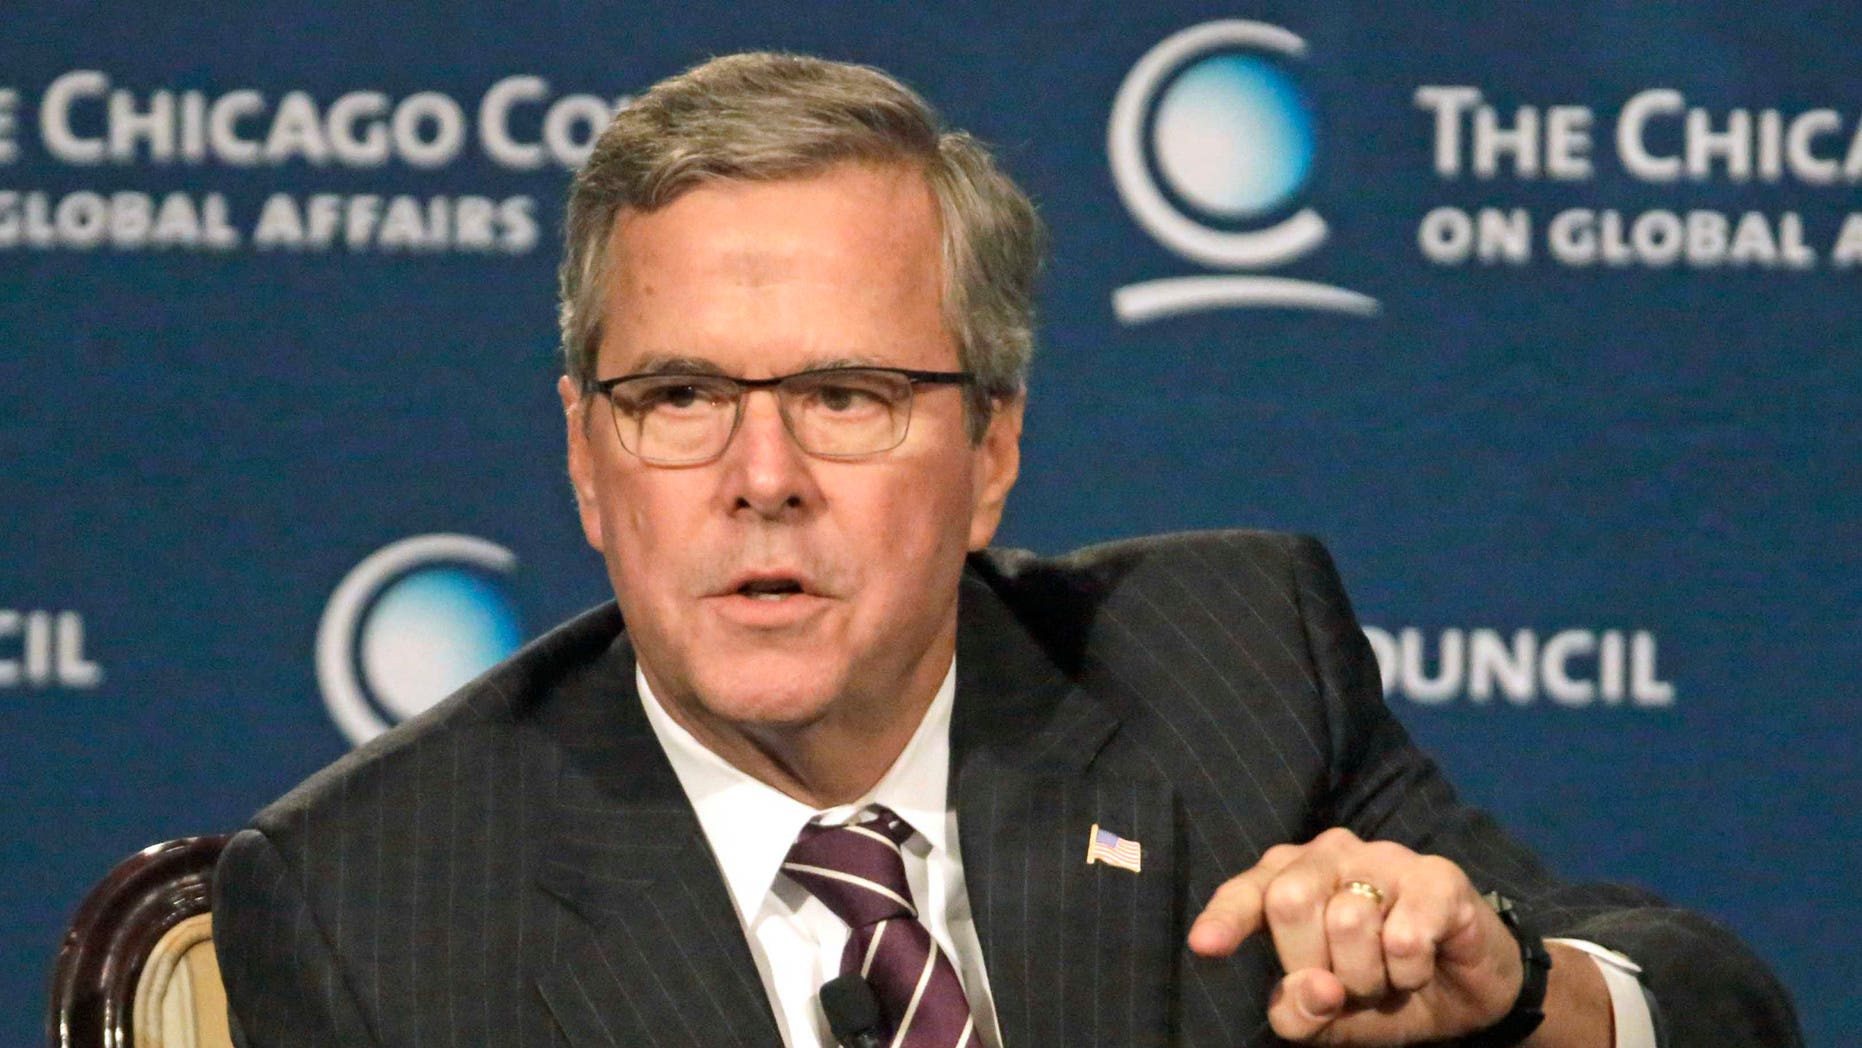 Former Florida Gov. Jeb. Bush at the Chicago Council on Global Affairs, Wednesday, Feb. 18, 2015, in Chicago.